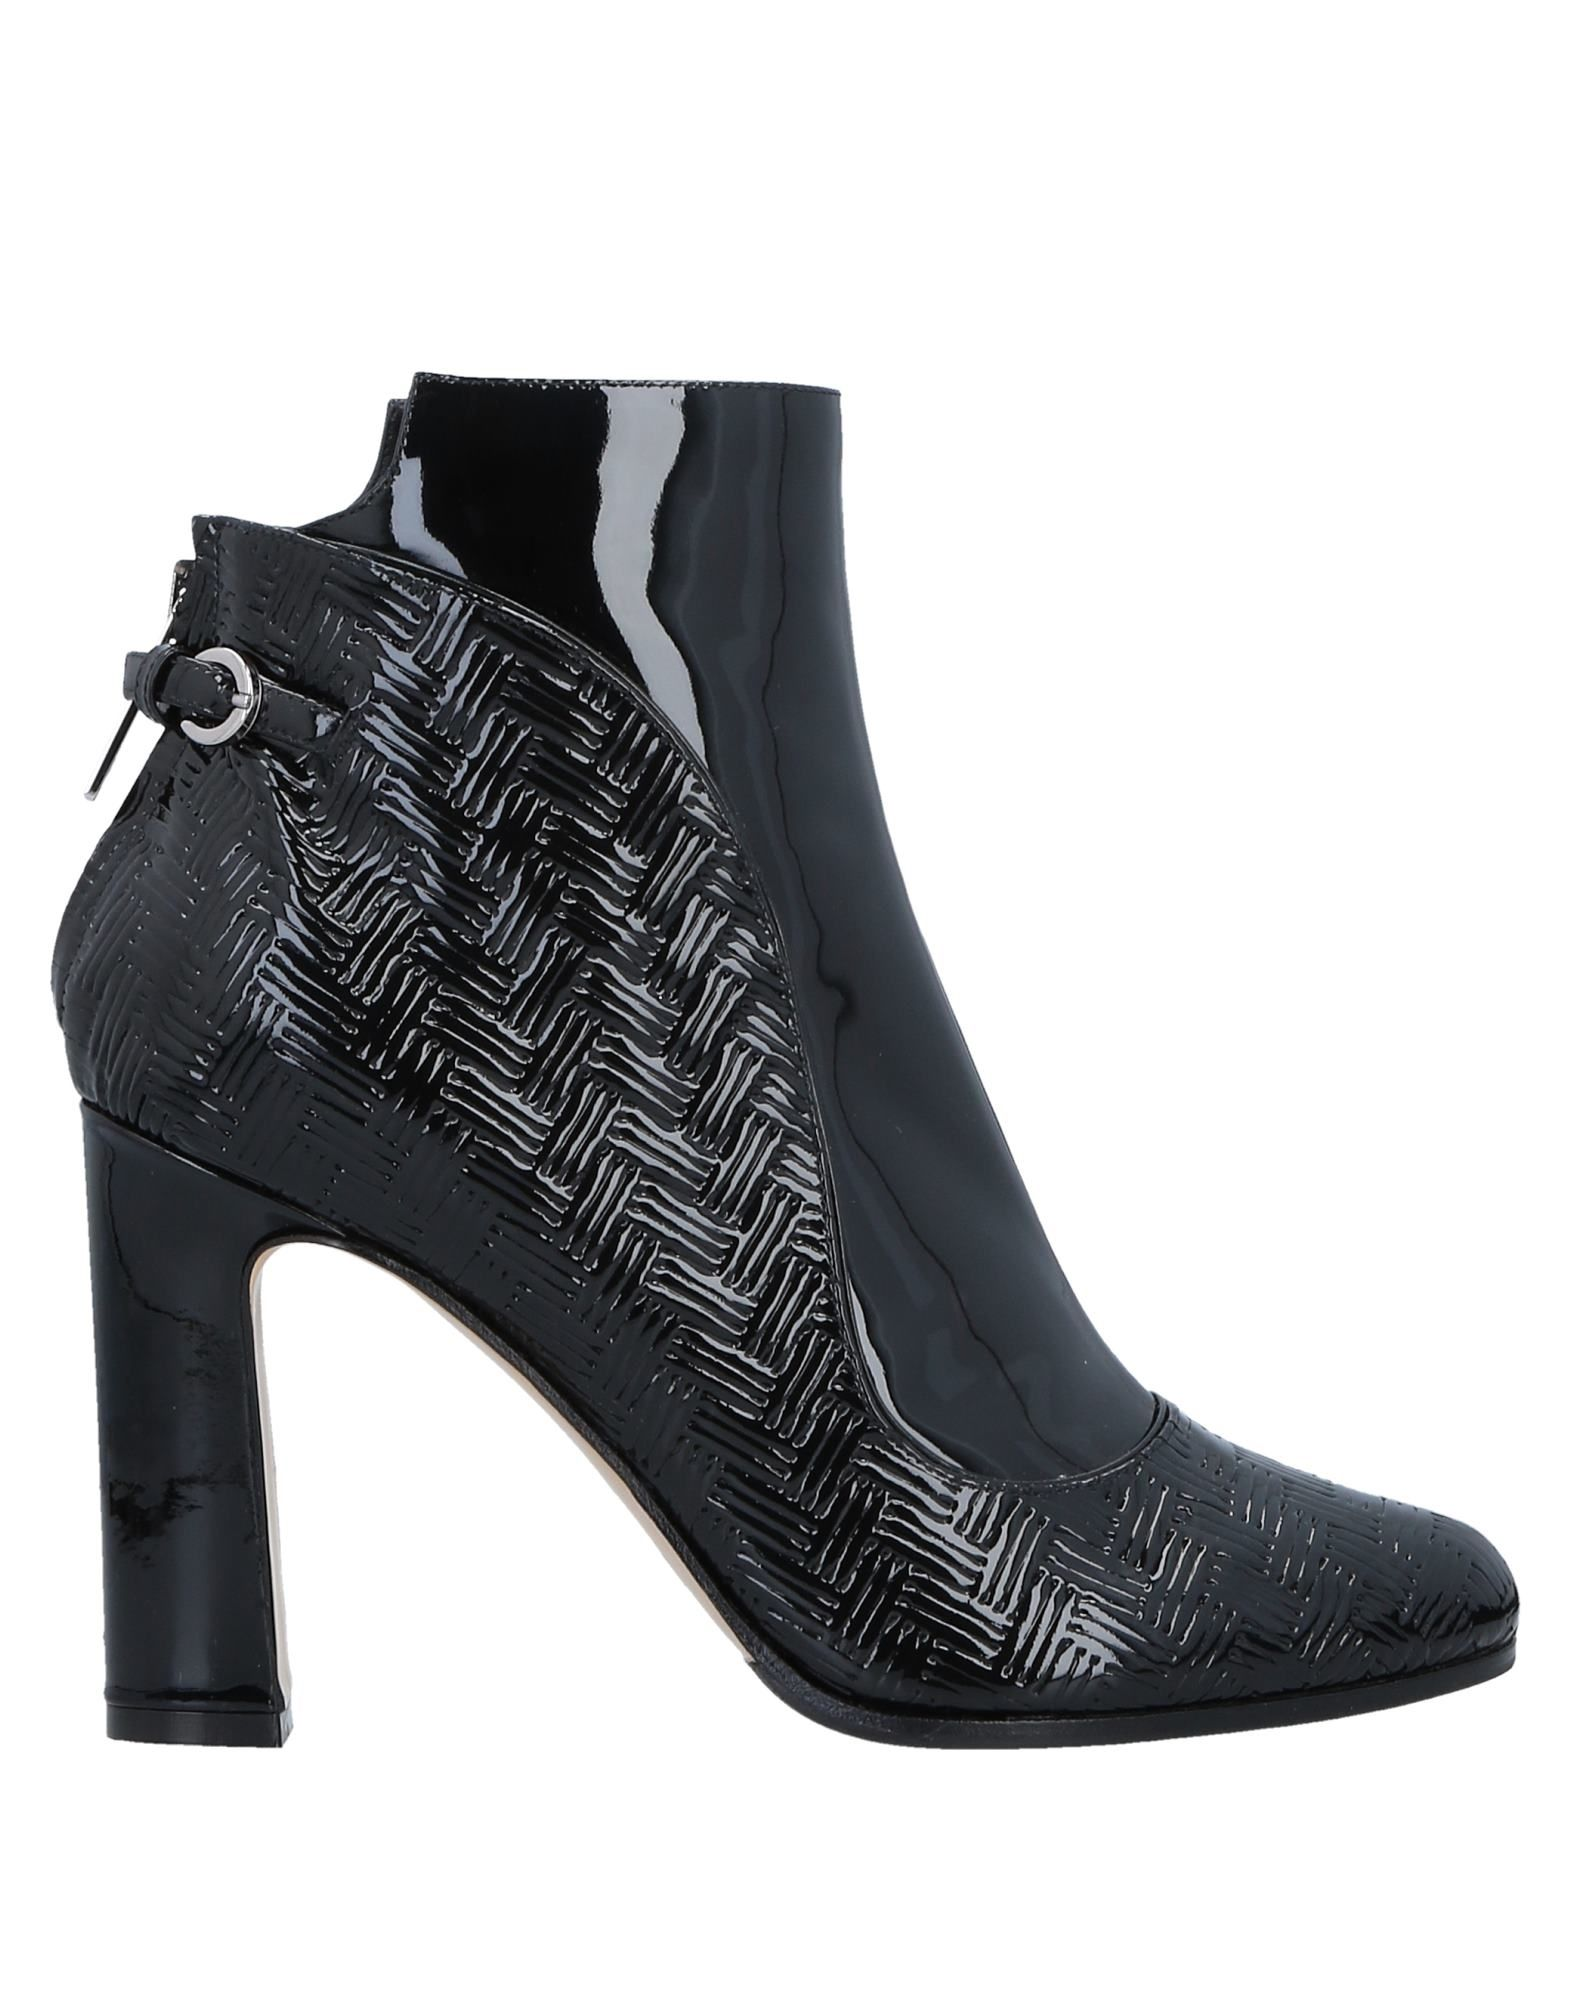 Rodo Boot Ankle Boot Rodo - Women Rodo Ankle Boots online on  Canada - 11542157CQ 2f3bc7